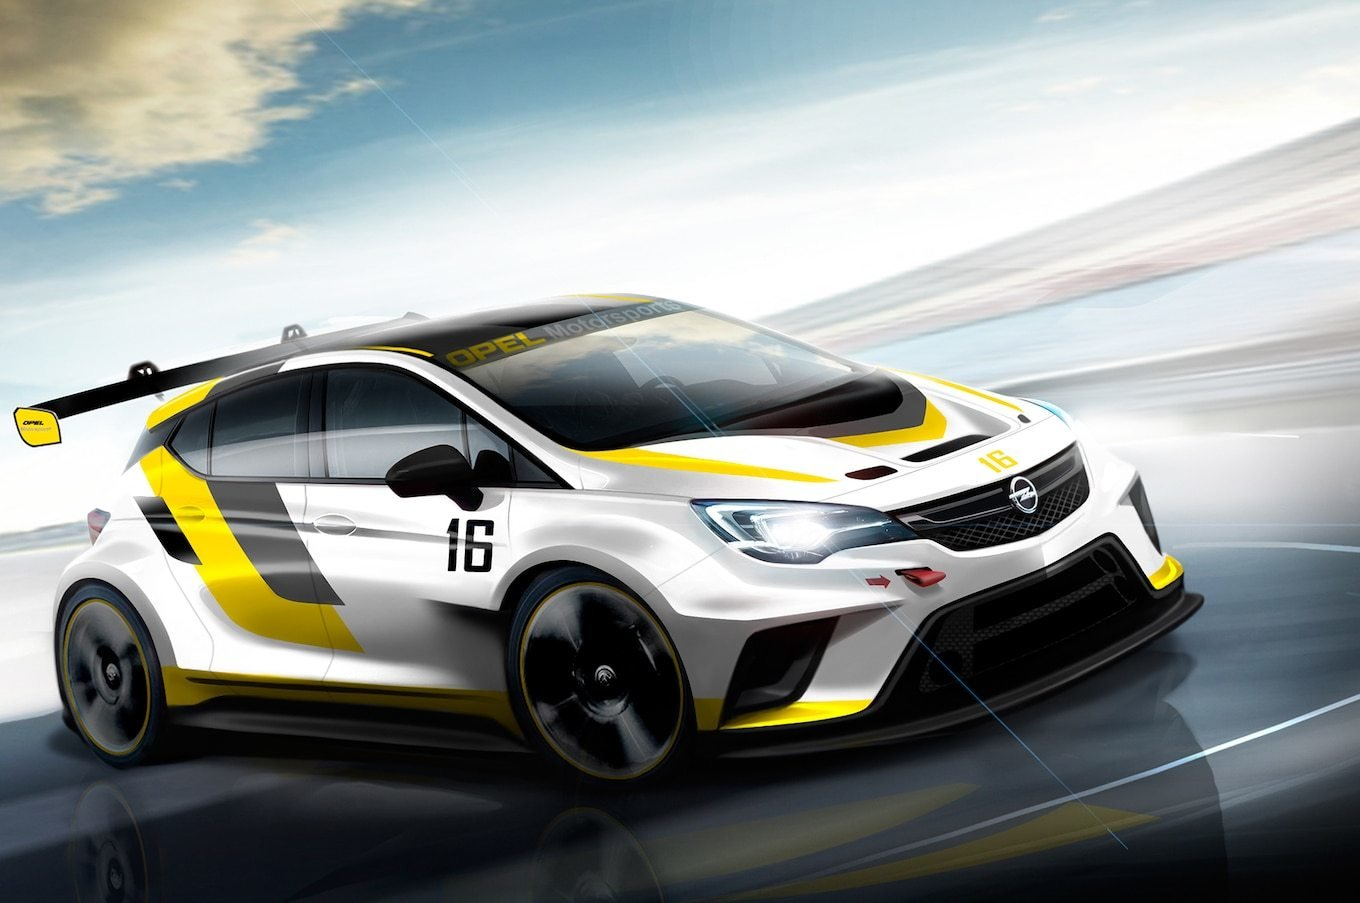 New Opel Developing 330 Hp Astra Race Car For Tcr Series On This Month